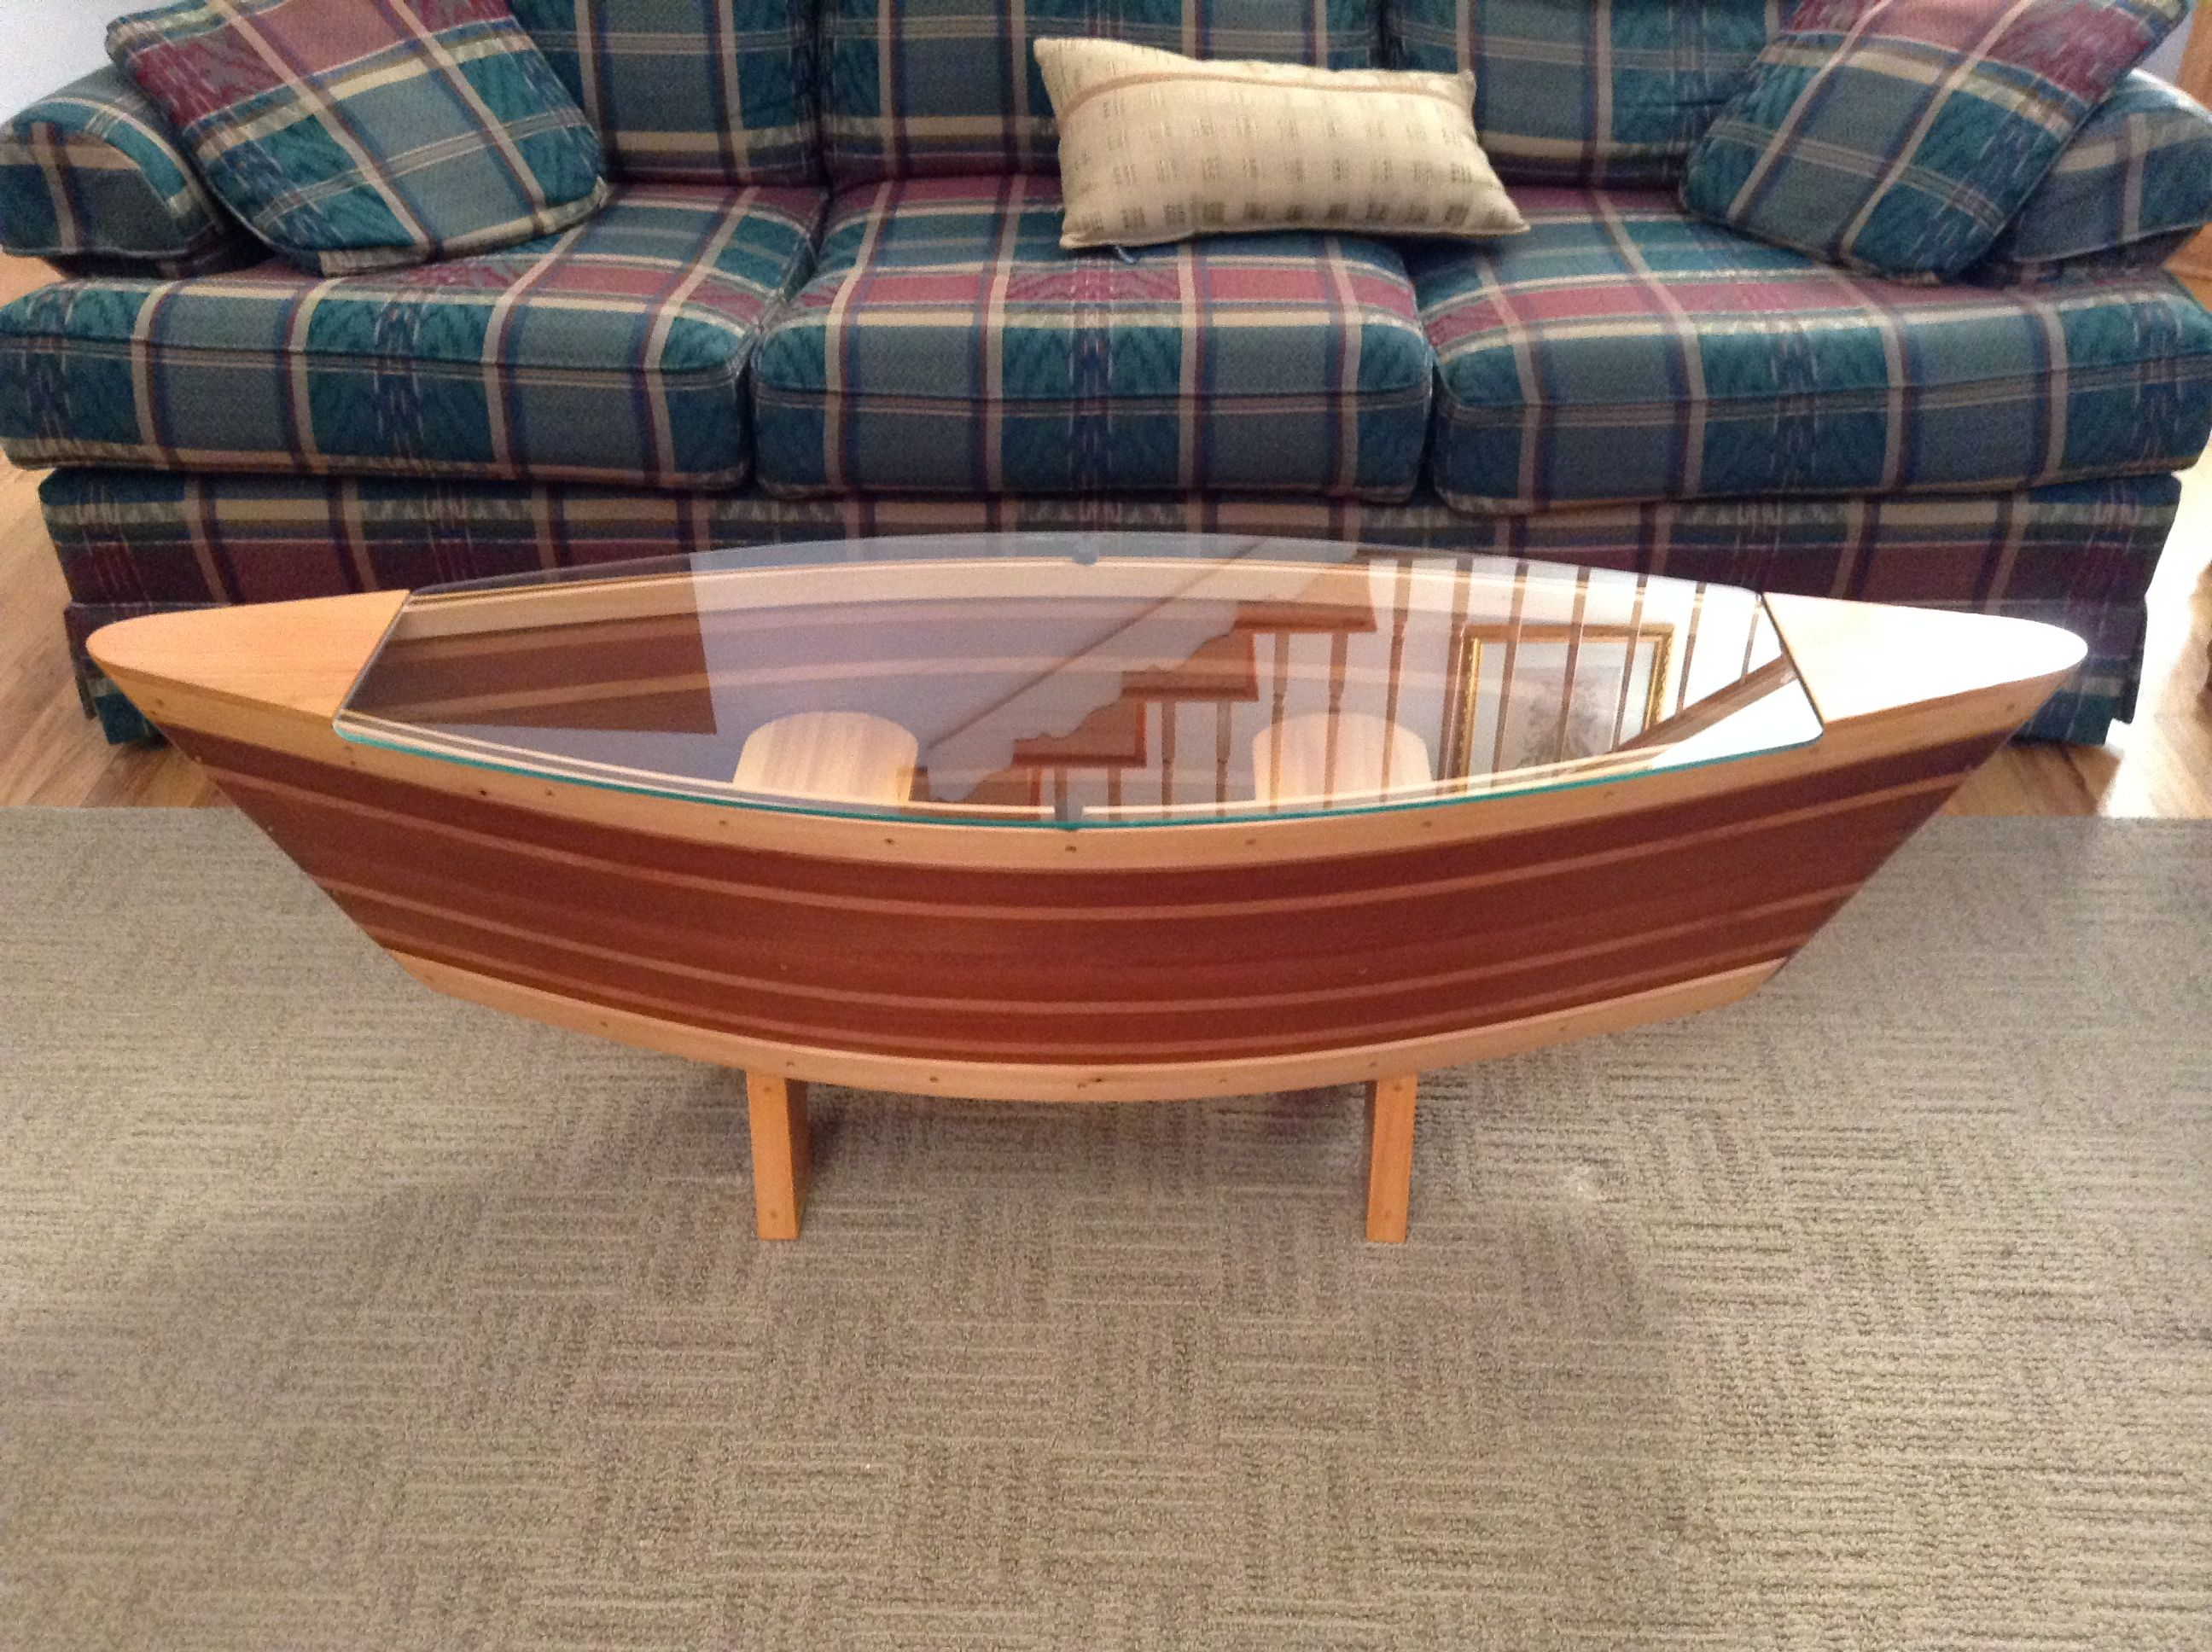 Canoe coffee table boat shelf 5ft canoe shaped coffee sofa table canoe coffee table boat shelf 5ft canoe shaped coffee sofa table solid redwood and cherry cabin geotapseo Gallery